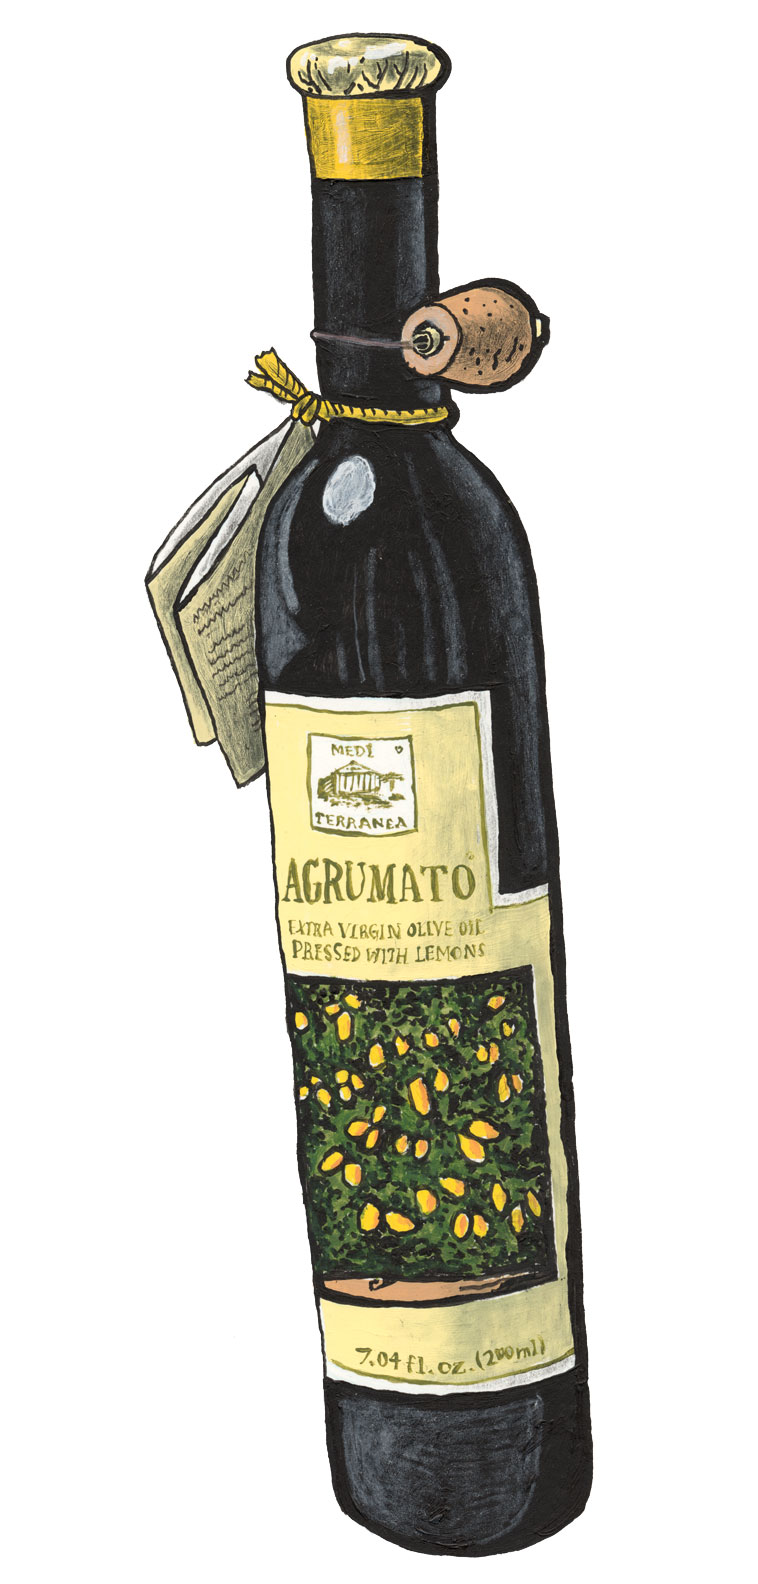 Agrumato Lemon Oil